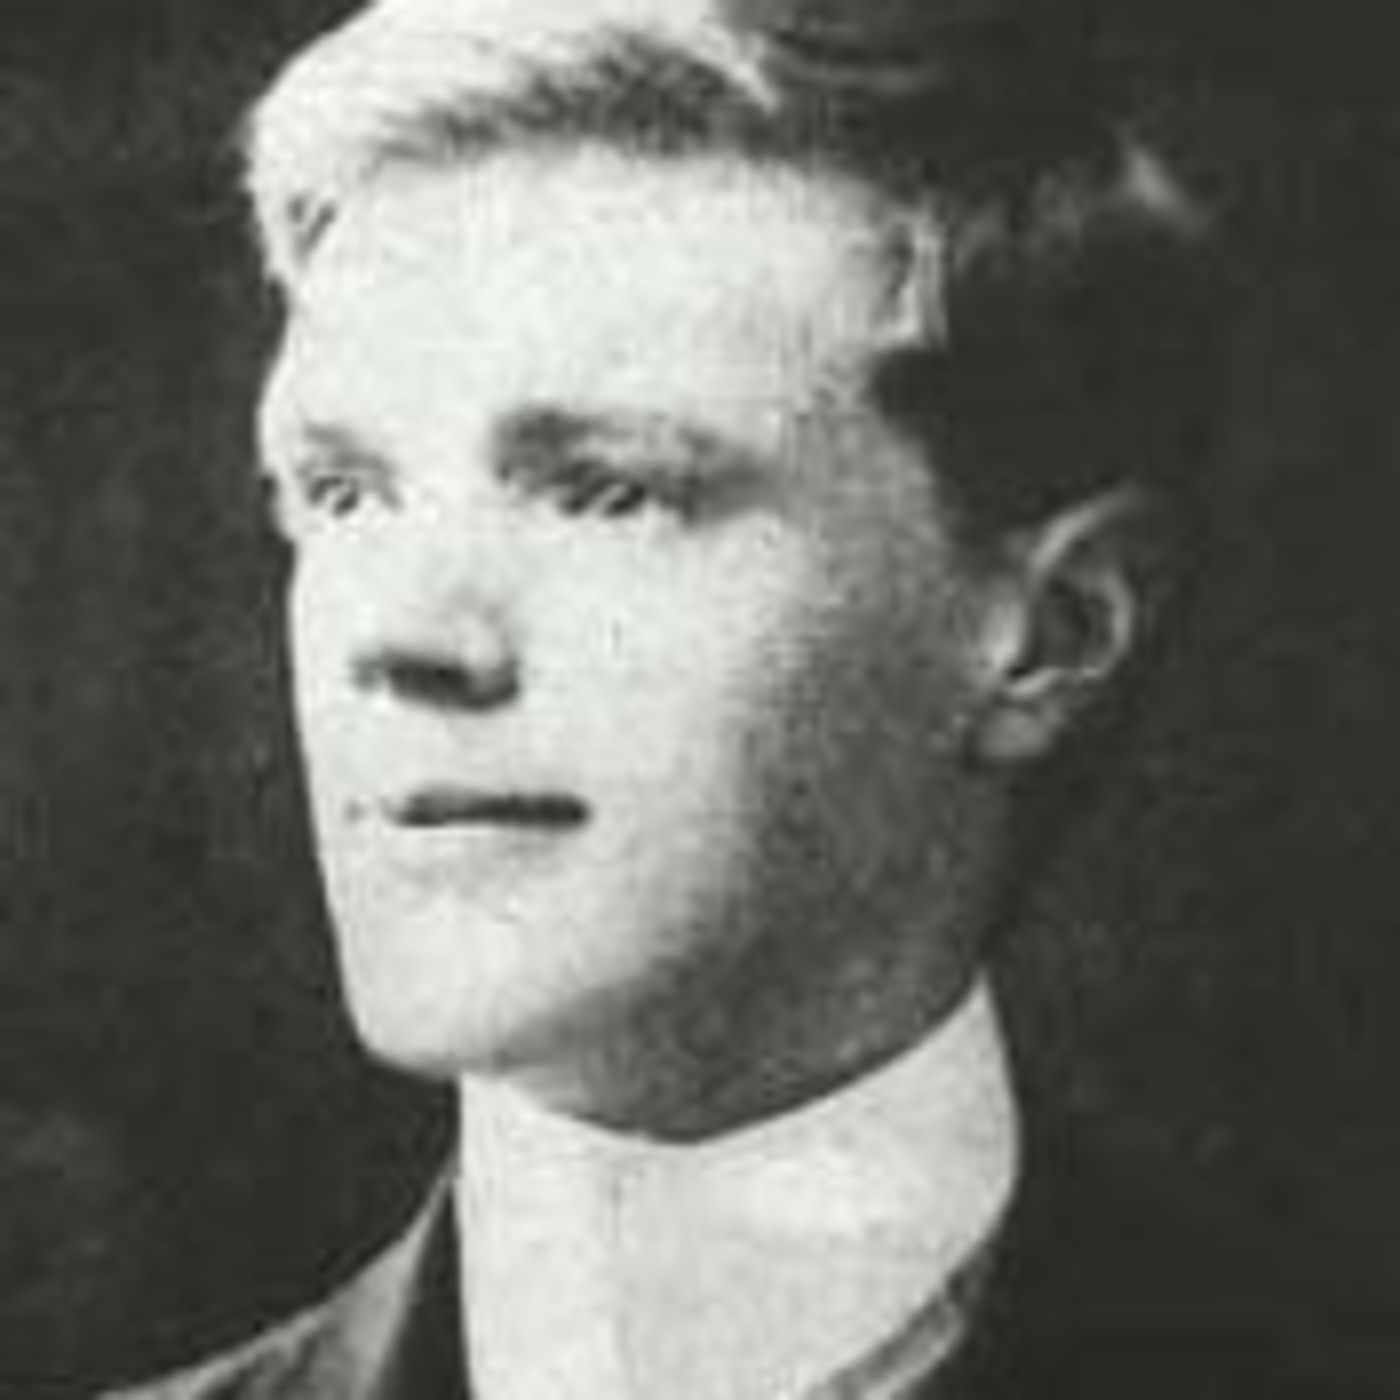 d h lawrence analysis Read this article to know about the summary of the rainbow by dh lawrence, tom and lydia, anna and will, ursula, the rainbow dh lawrence summary, the rainbow summary, the rainbow dh lawrence pdf, the rainbow novel summary, the rainbow d h lawrence analysis.